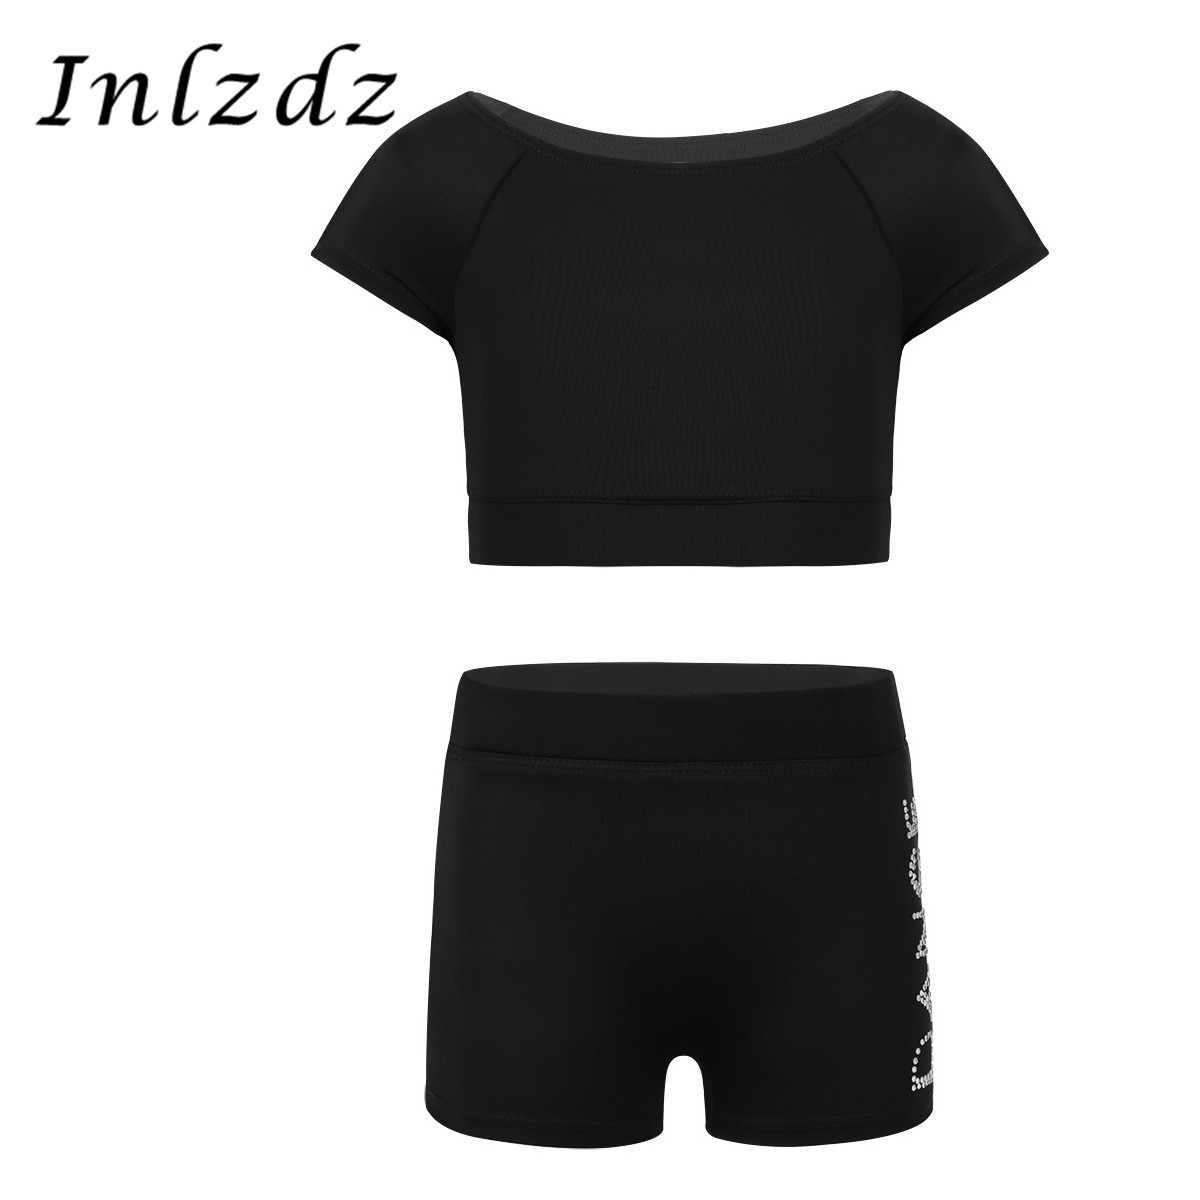 Kids Girls Tankini Swimsuit Outfit Short Sleeves Swimwear Tank Top With Letters Printed Bottoms Set Dancewear For Ballet Dance